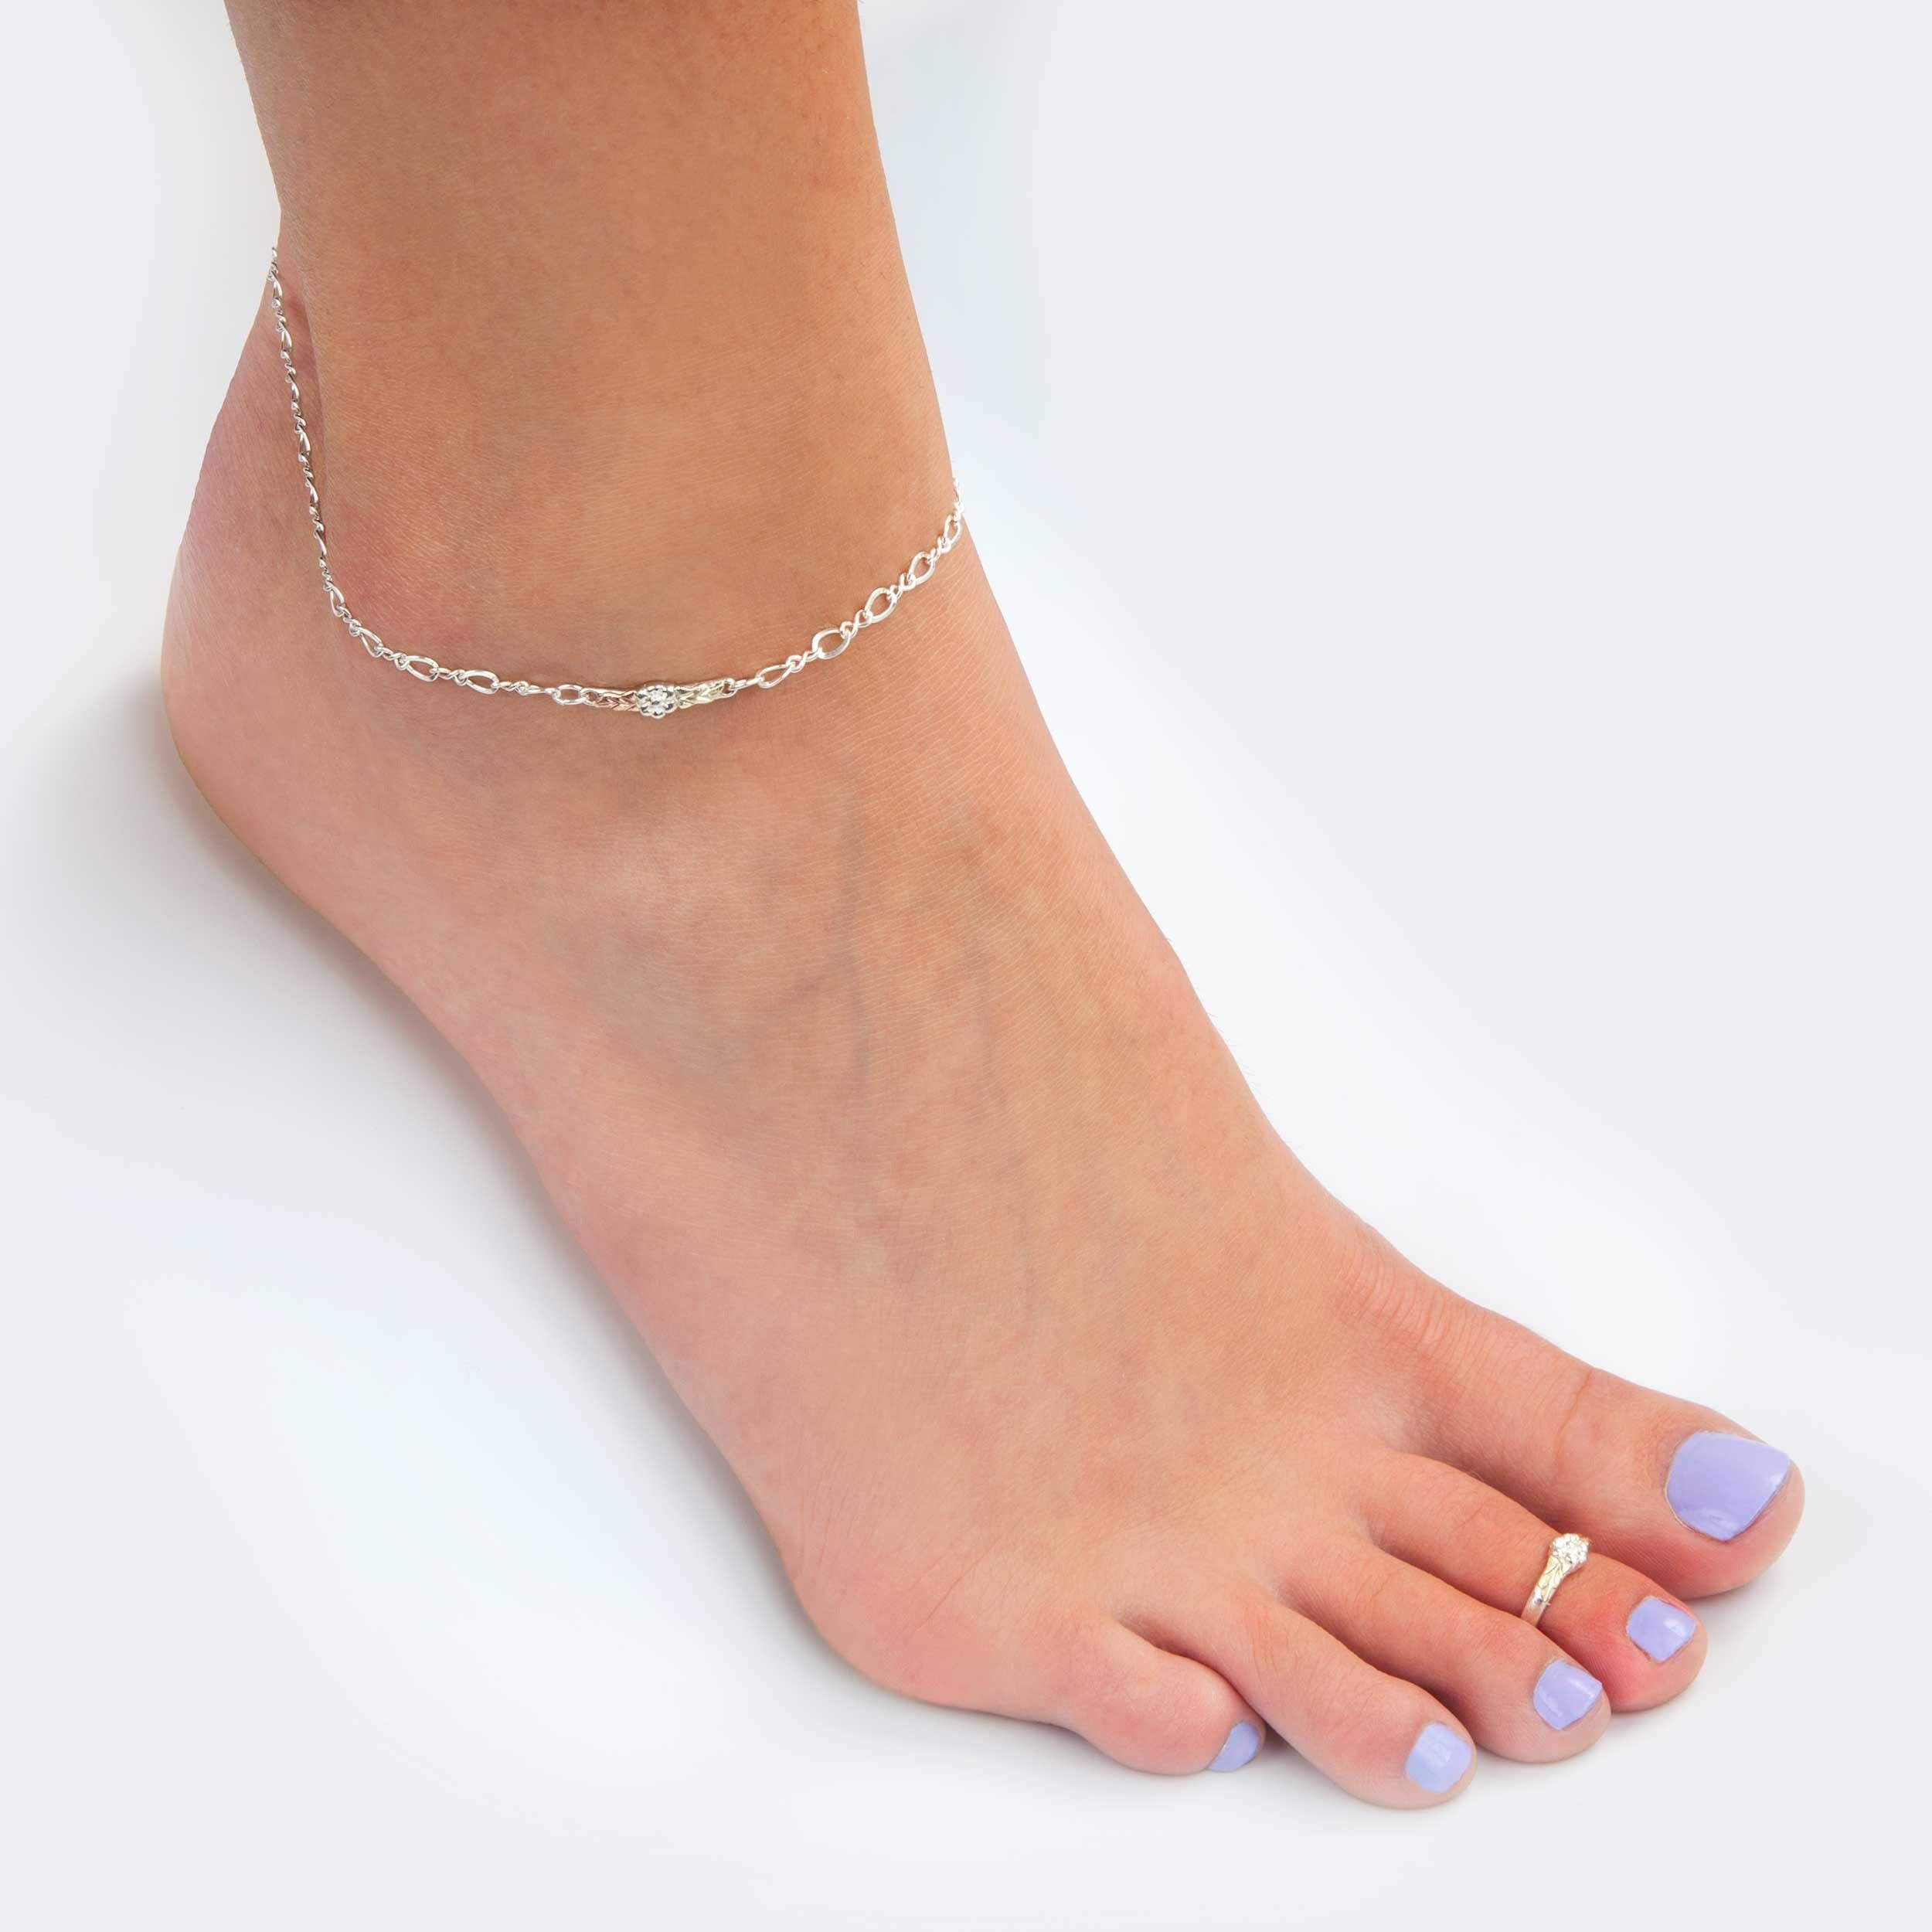 orig weddings tag anklet gallery inspiration indian bride jewelry bridal matching bracelets wedding ankle photo